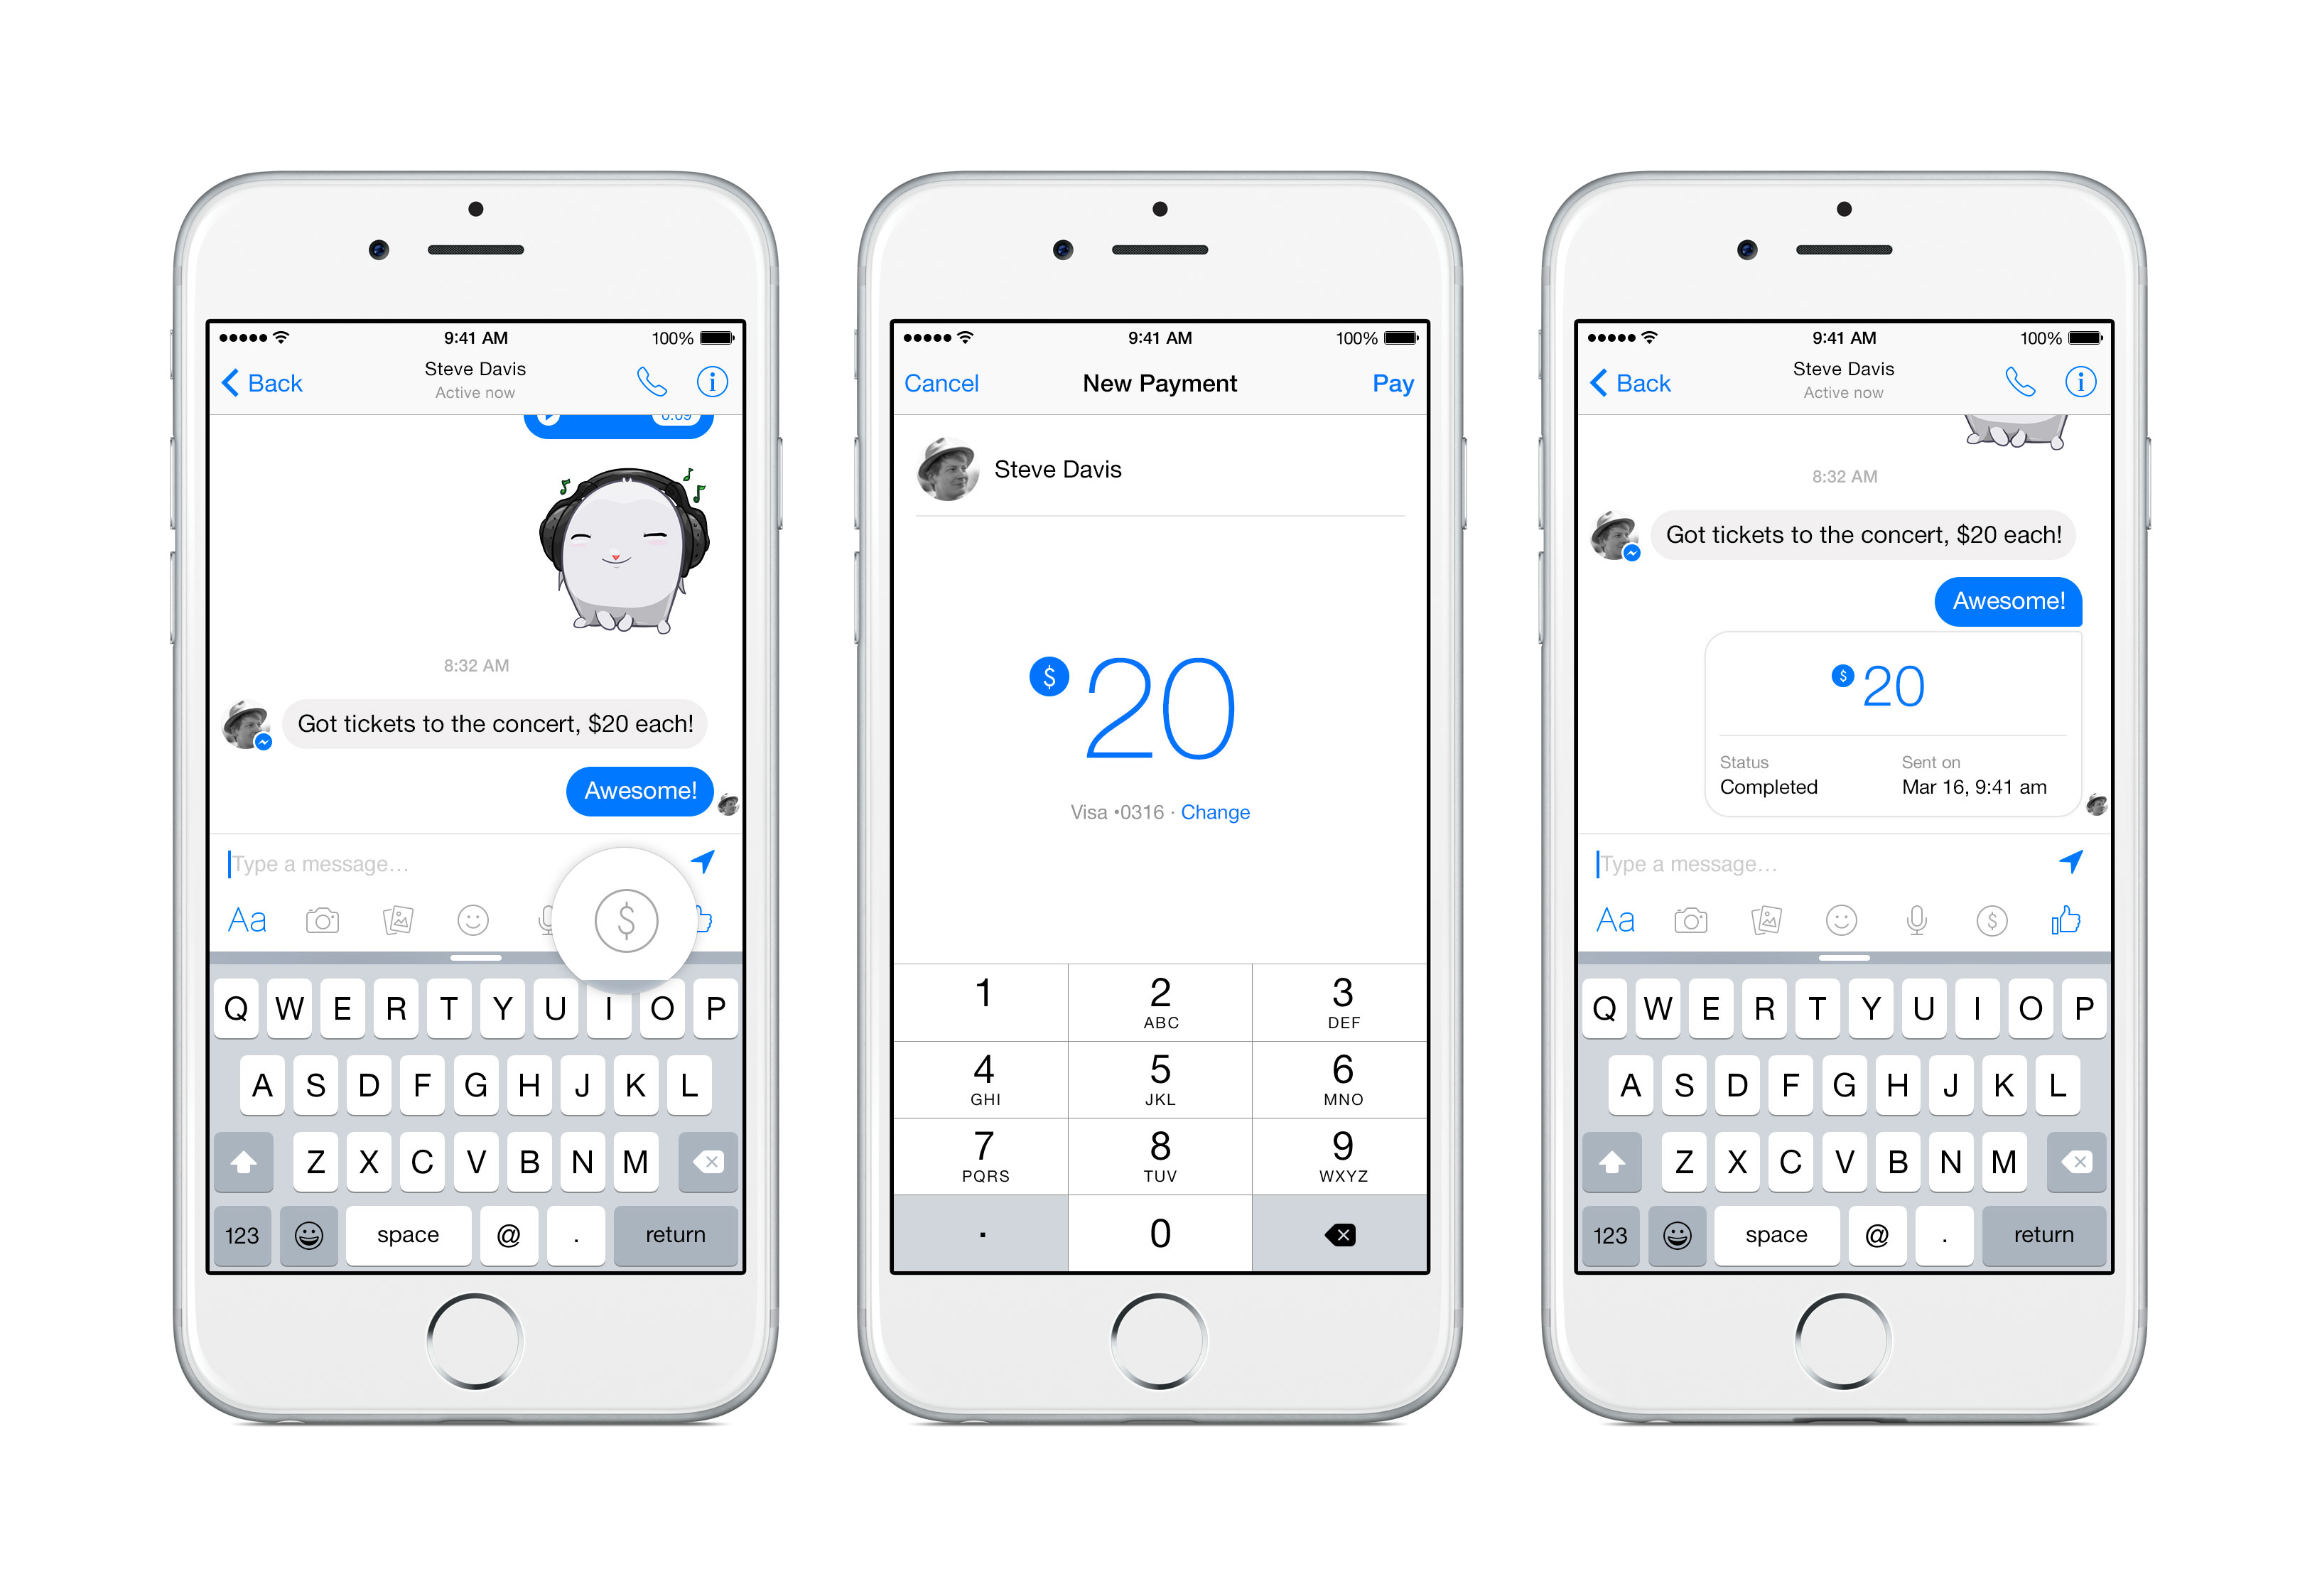 Facebook Messenger users will soon be able send and receive money from the app